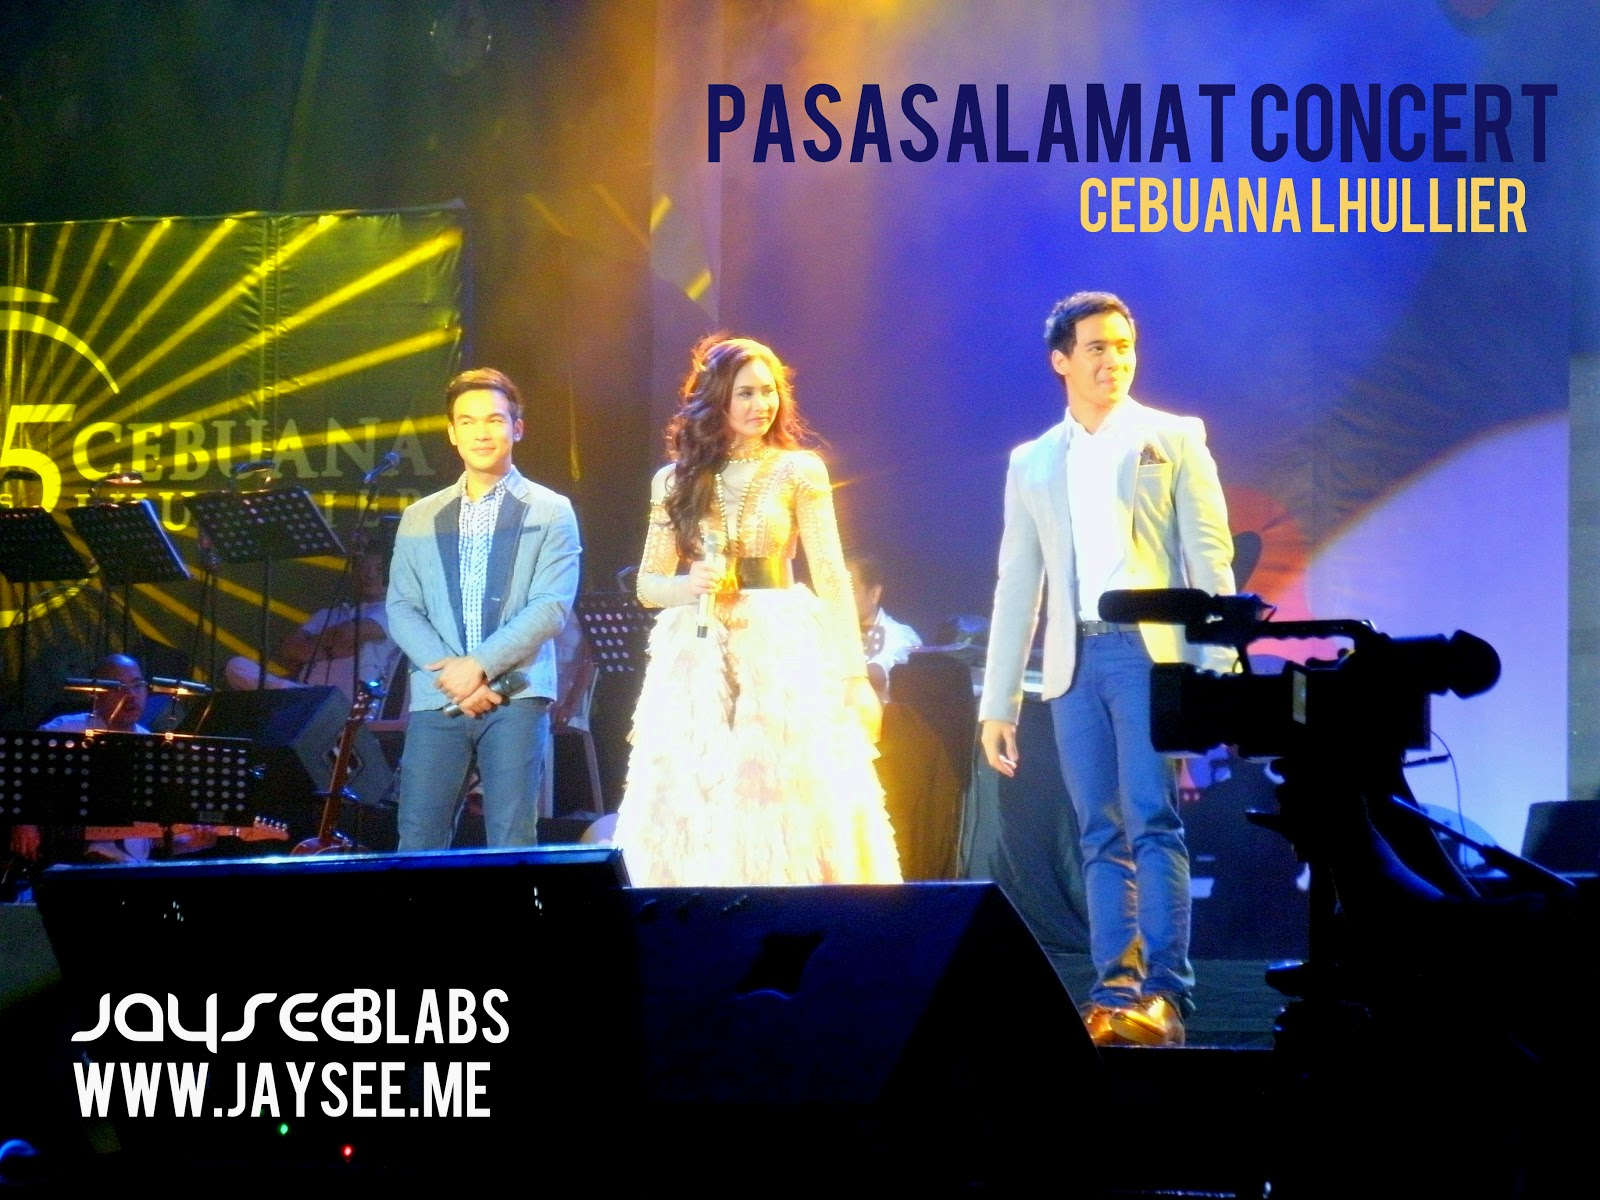 Sarah Geronimo, Erik Santos and Christian Bautista